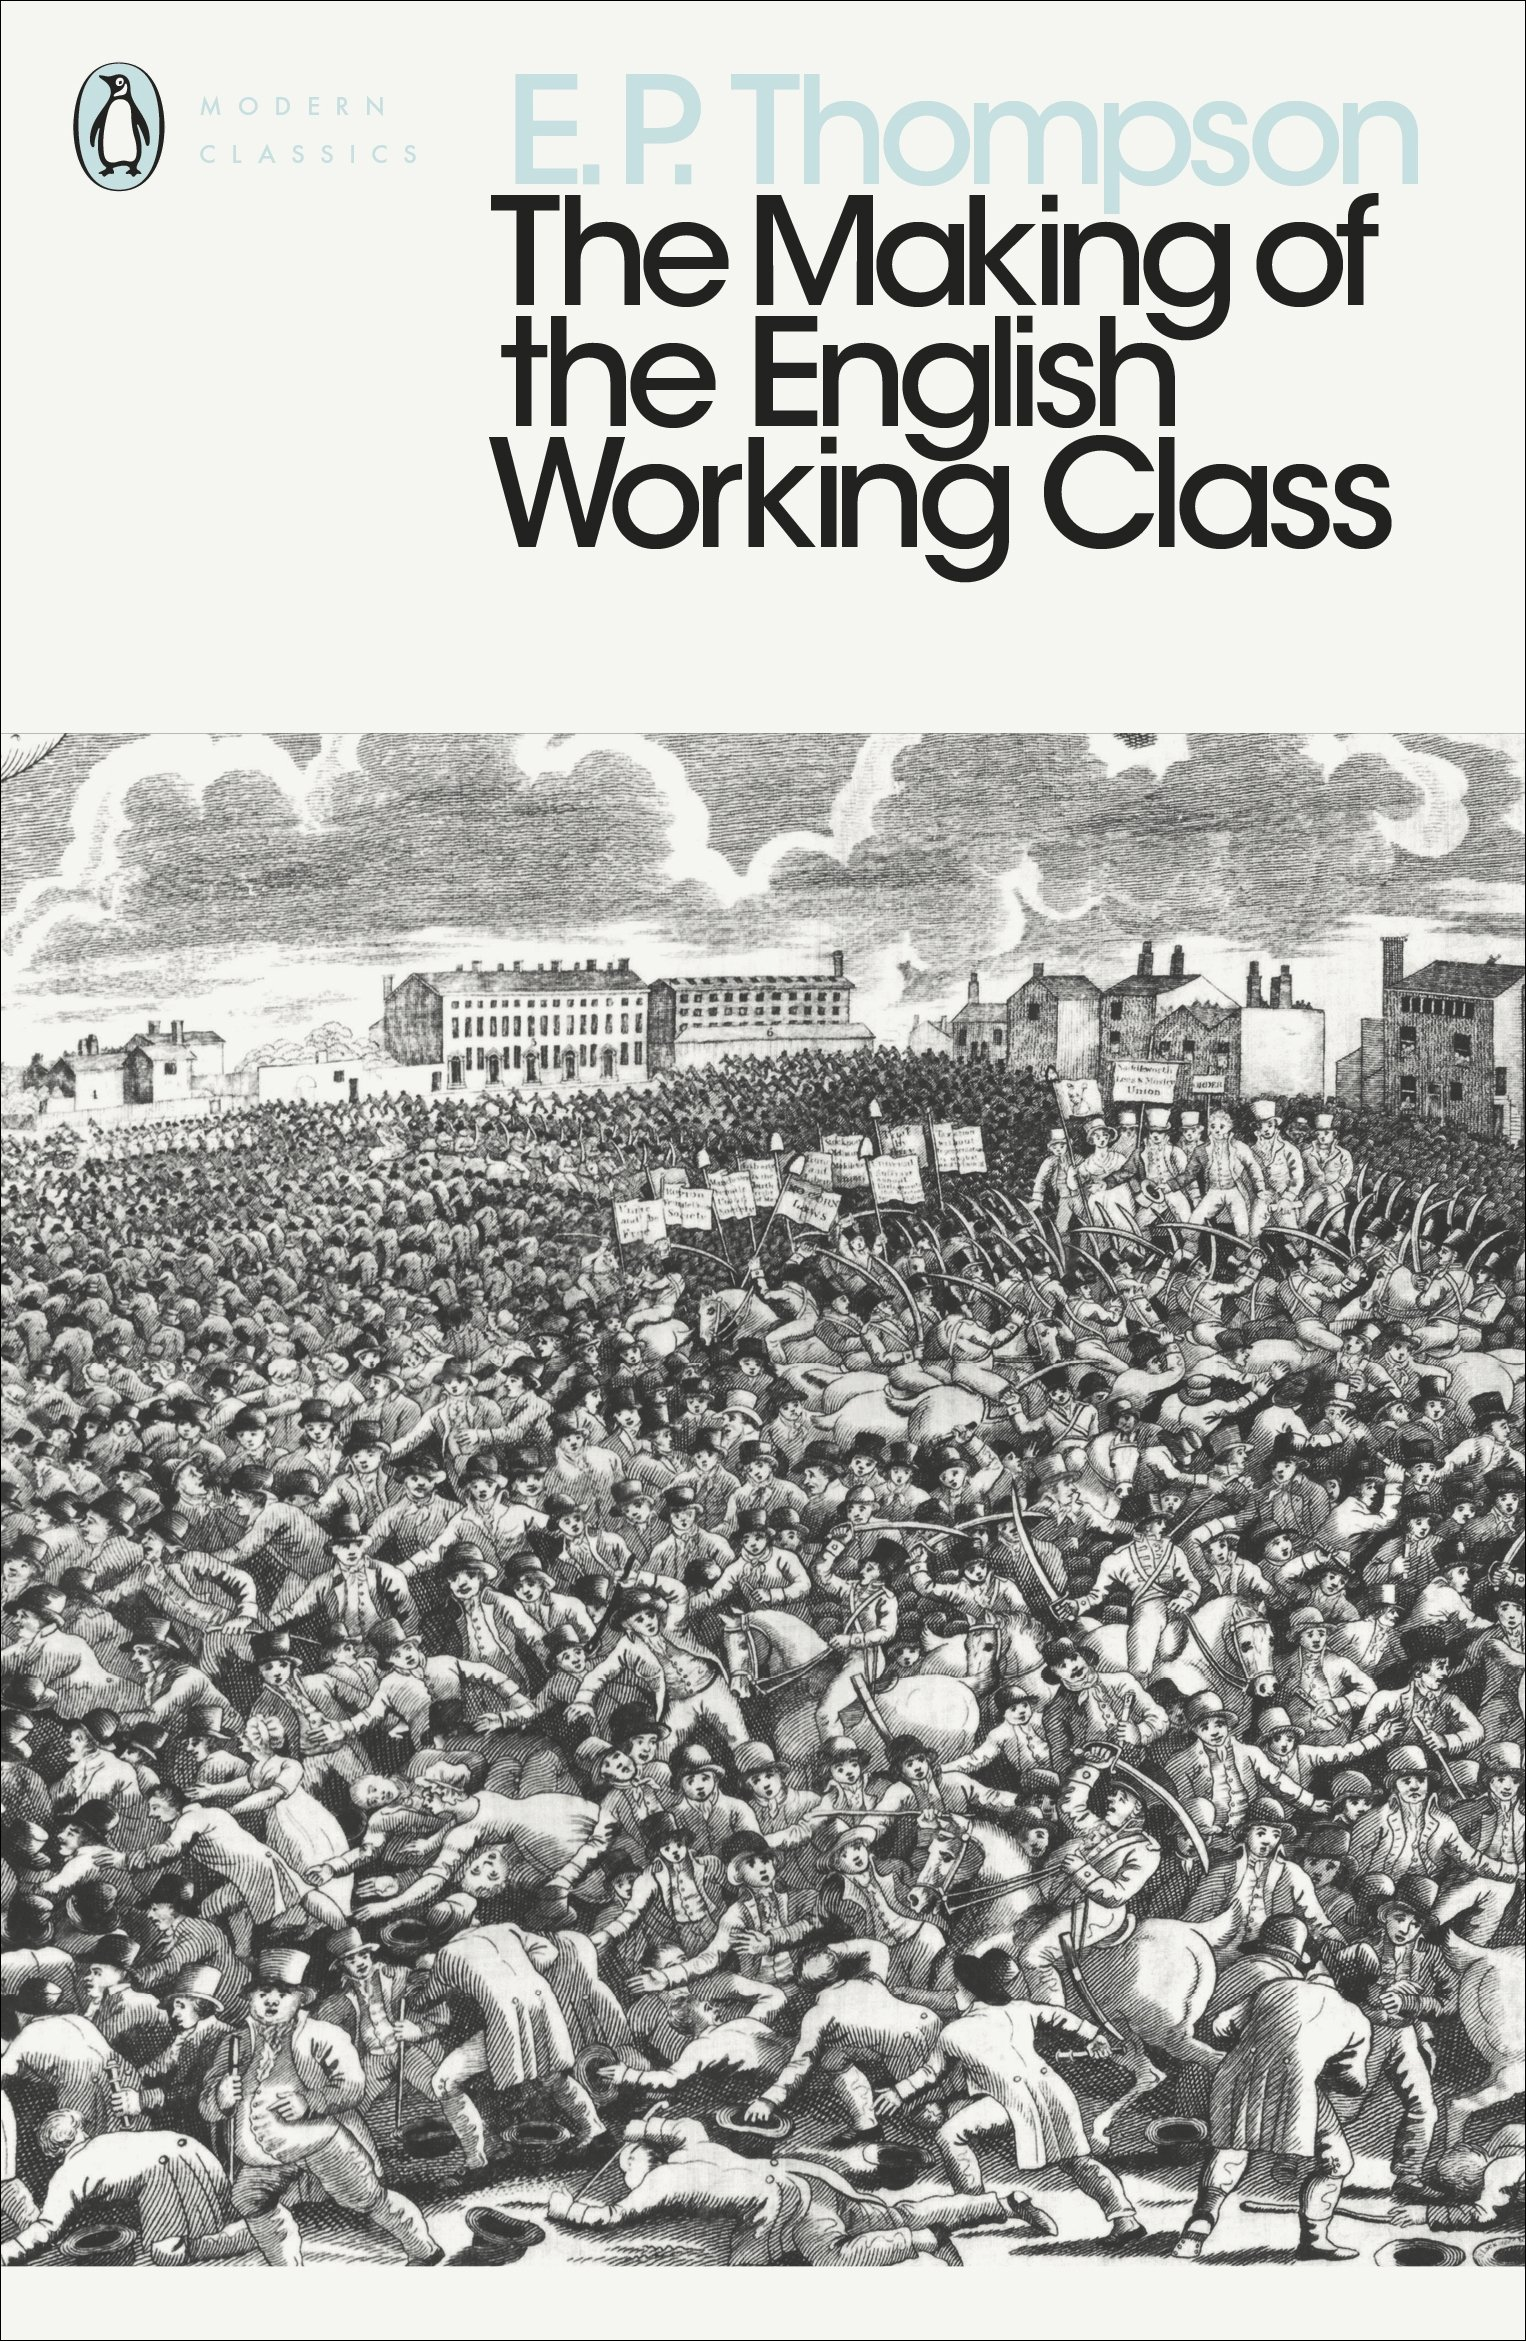 The Making of the English Working Class (Penguin Modern Classics)